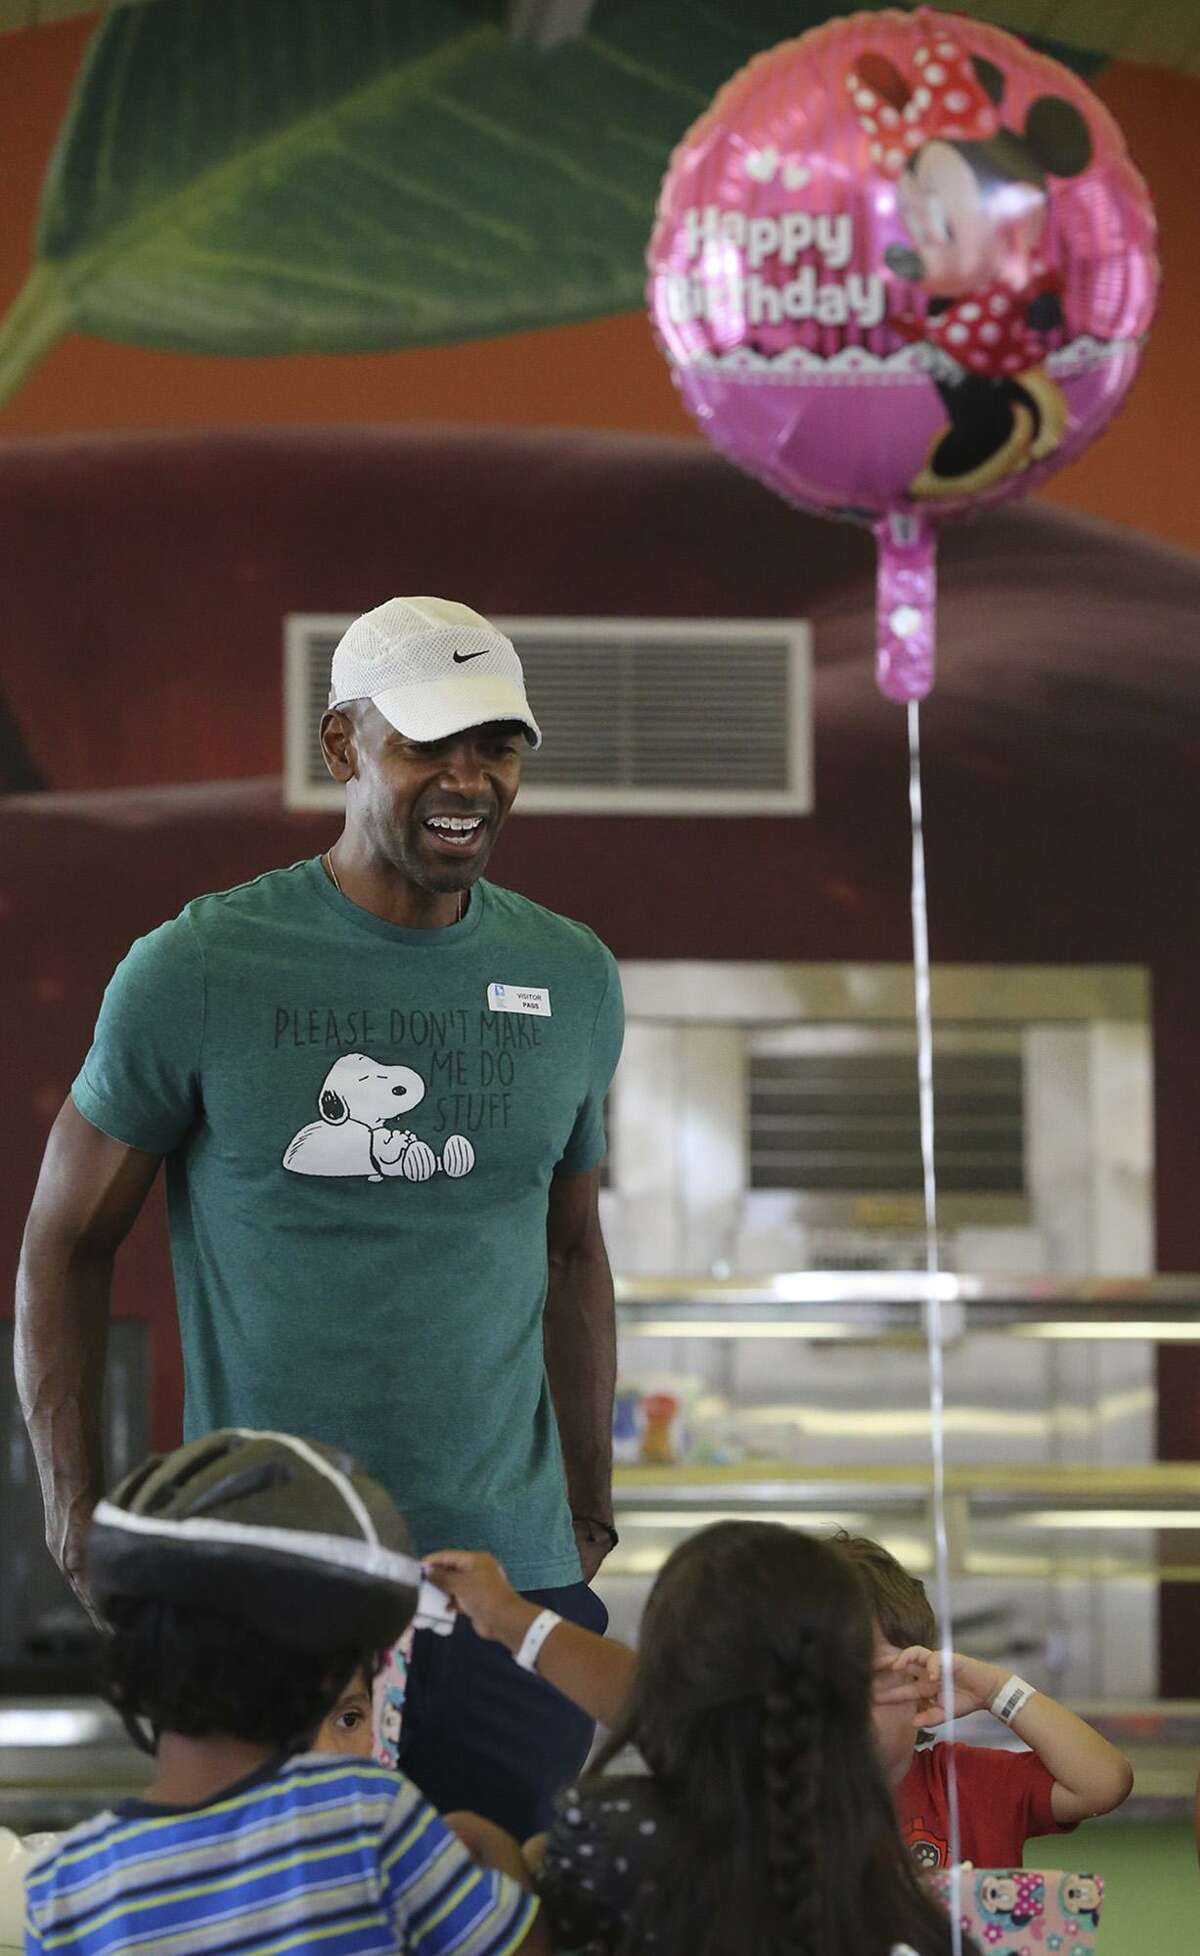 """Kortney Johnson (facing, wearing cap) volunteers at The Children's Center Tuesday August 8, 2017. Johnson has been in the U.S. Army for the past 23 years and helps kids at the center celebrate their birthdays. """"It's our obligation to help one another,"""" Johnson said."""